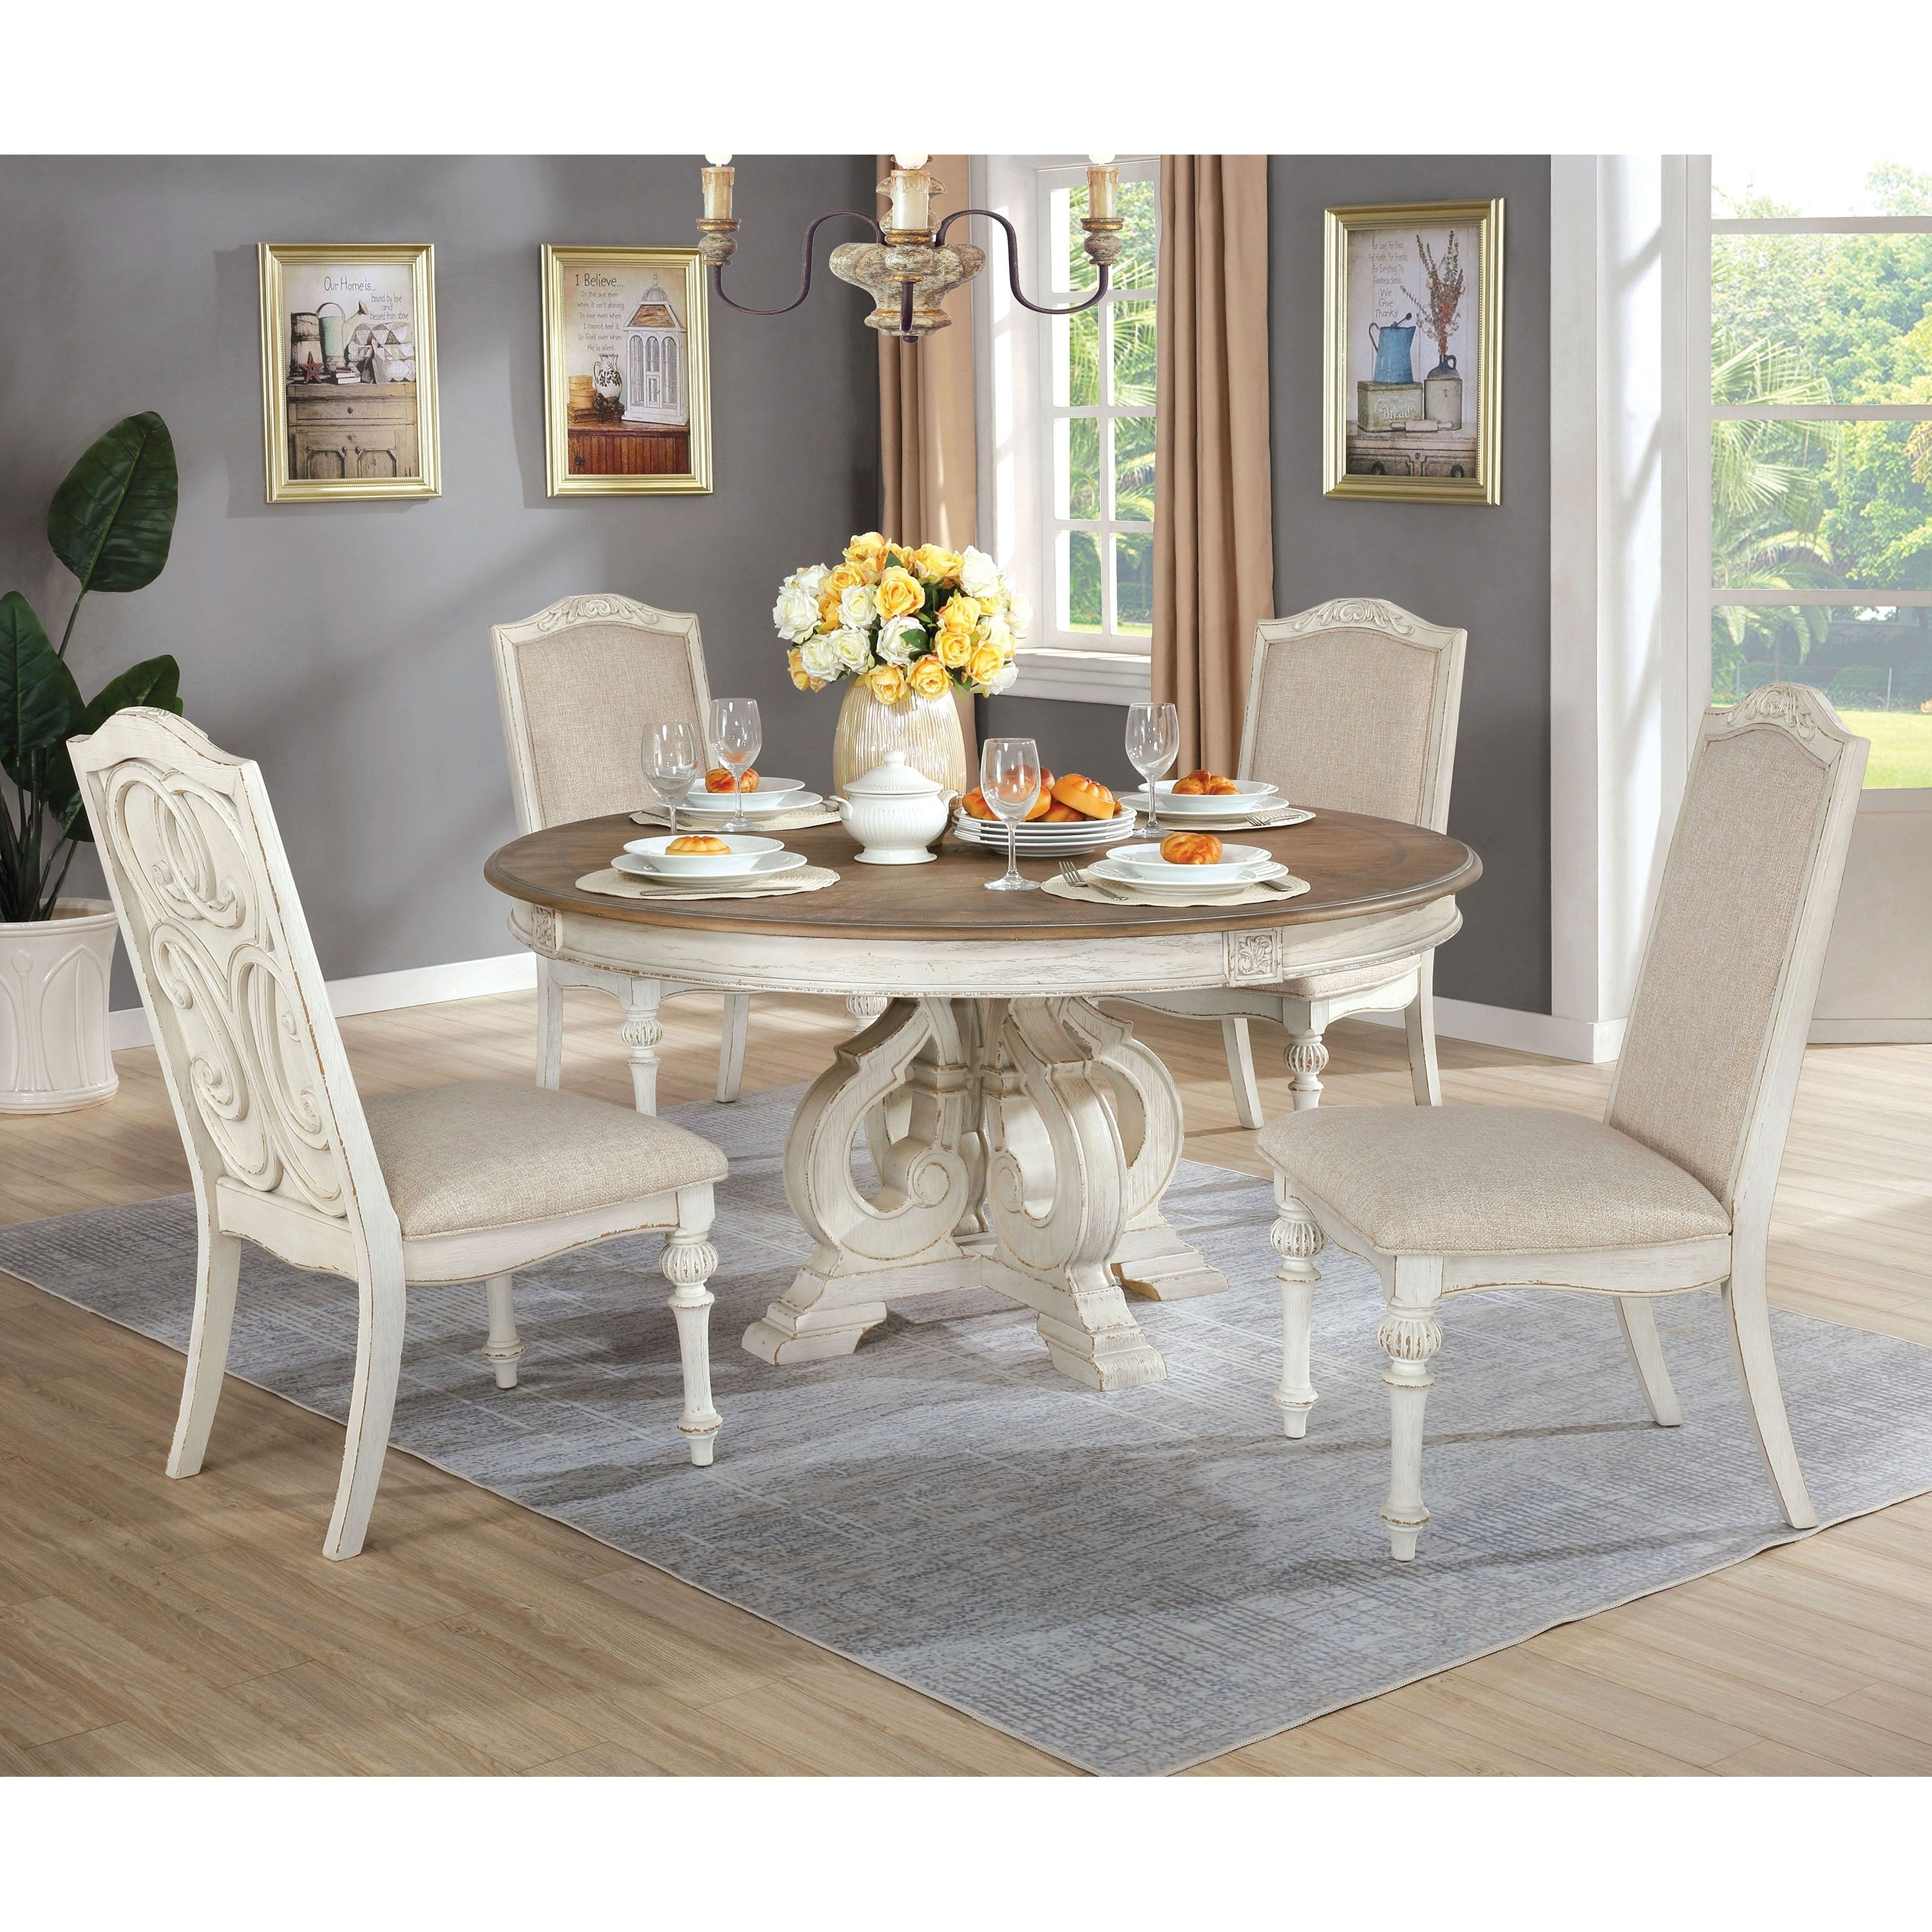 The Gray Barn Brook House Farmhouse White 5 Piece Round Dining Set Overstock 29726525